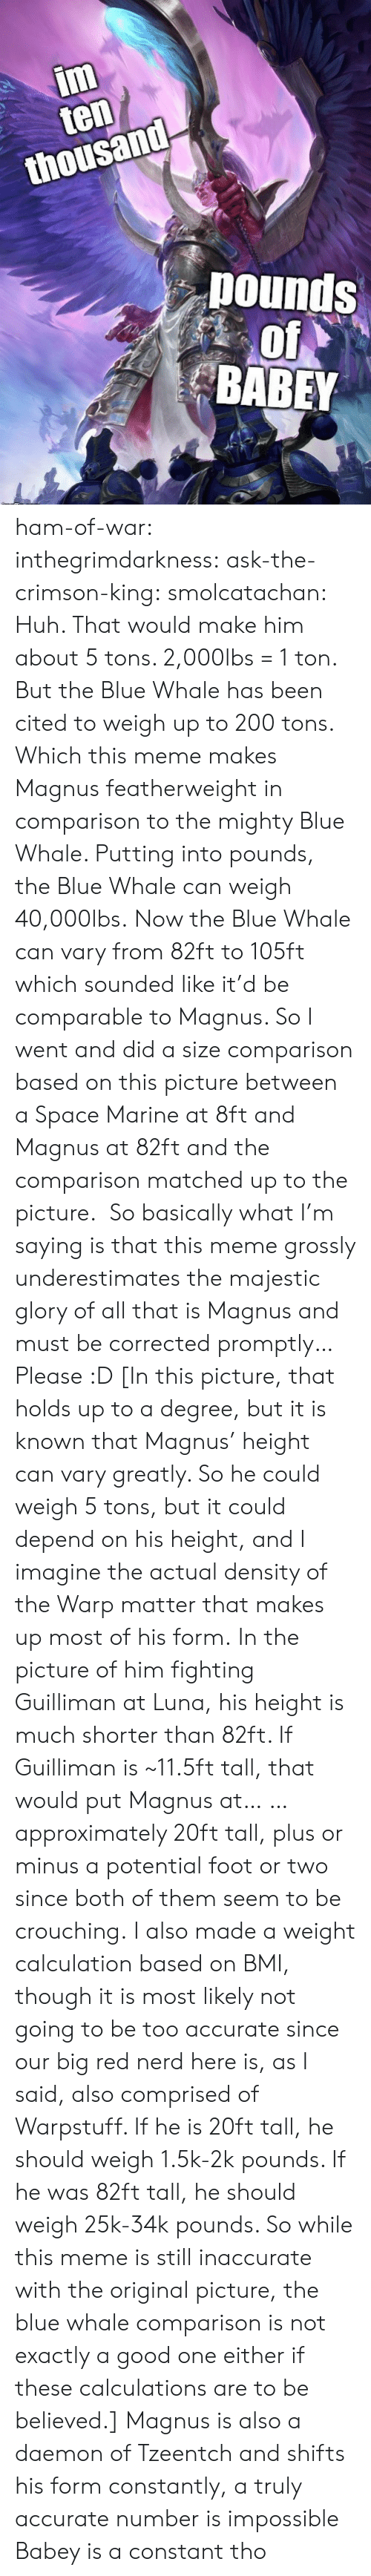 ham: im  ten  thousand  pounds  of  BABEY ham-of-war: inthegrimdarkness:   ask-the-crimson-king:   smolcatachan:  Huh. That would make him about 5 tons. 2,000lbs = 1 ton. But the Blue Whale has been cited to weigh up to 200 tons. Which this meme makes Magnus featherweight in comparison to the mighty Blue Whale. Putting into pounds, the Blue Whale can weigh 40,000lbs. Now the Blue Whale can vary from 82ft to 105ft which sounded like it'd be comparable to Magnus. So I went and did a size comparison based on this picture between a Space Marine at 8ft and Magnus at 82ft and the comparison matched up to the picture.  So basically what I'm saying is that this meme grossly underestimates the majestic glory of all that is Magnus and must be corrected promptly…Please :D  [In this picture, that holds up to a degree, but it is known that Magnus' height can vary greatly. So he could weigh 5 tons, but it could depend on his height, and I imagine the actual density of the Warp matter that makes up most of his form. In the picture of him fighting Guilliman at Luna, his height is much shorter than 82ft. If Guilliman is ~11.5ft tall, that would put Magnus at… … approximately 20ft tall, plus or minus a potential foot or two since both of them seem to be crouching. I also made a weight calculation based on BMI, though it is most likely not going to be too accurate since our big red nerd here is, as I said, also comprised of Warpstuff. If he is 20ft tall, he should weigh 1.5k-2k pounds. If he was 82ft tall, he should weigh 25k-34k pounds. So while this meme is still inaccurate with the original picture, the blue whale comparison is not exactly a good one either if these calculations are to be believed.]   Magnus is also a daemon of Tzeentch and shifts his form constantly, a truly accurate number is impossible    Babey is a constant tho